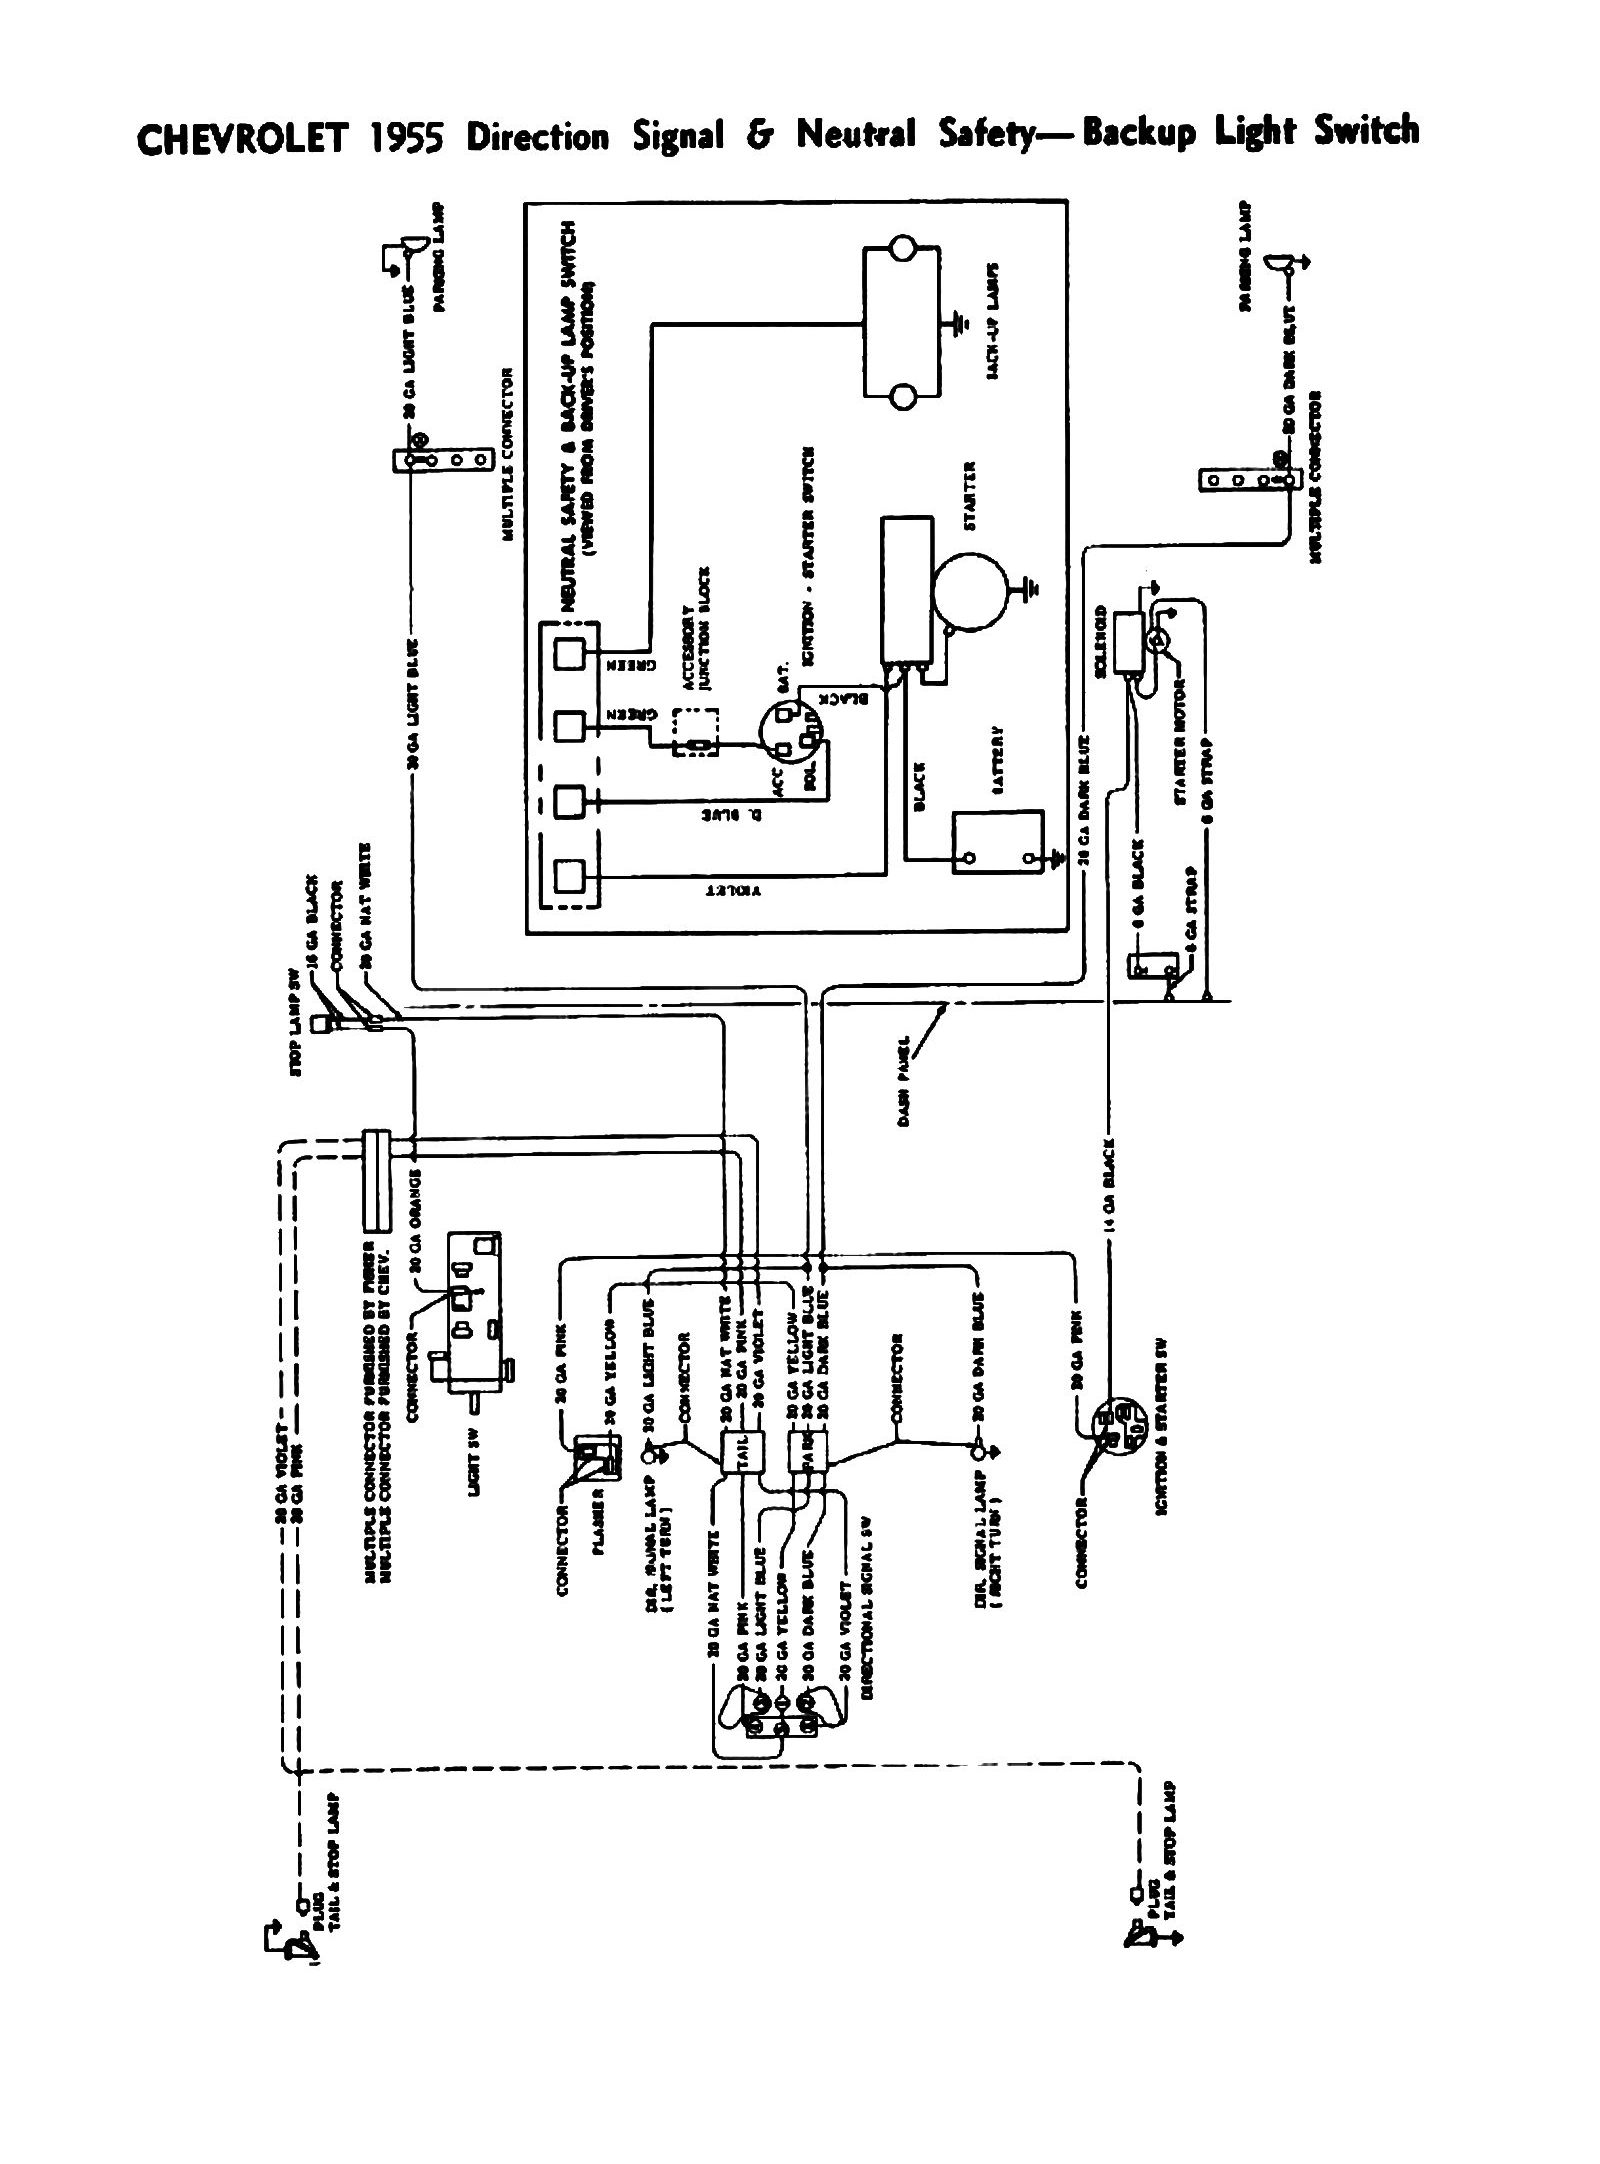 55signal chevy wiring diagrams 1955 chevy ignition switch wiring diagram at alyssarenee.co